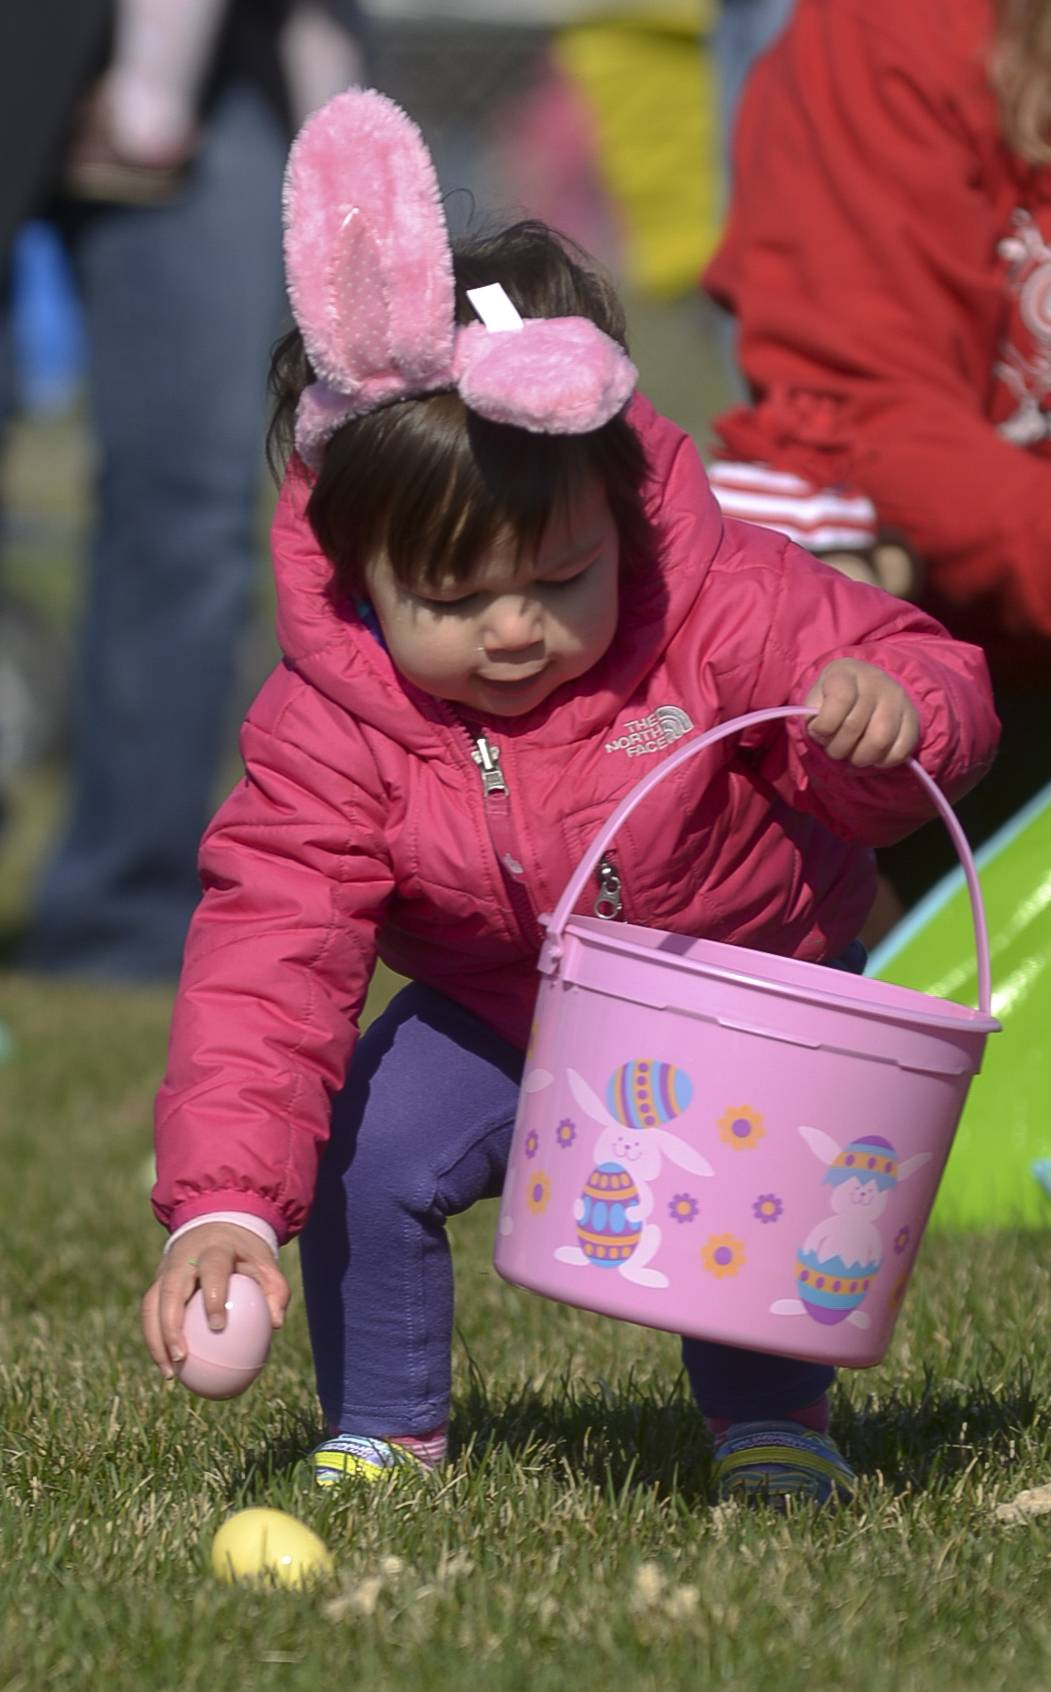 With bunny ears in place, 2-year-old Alexis Berndl of Bolingbrook gathers up Easter eggs at the 29th annual Jaycees egg hunt held at the Frontier Sports Complex in Naperville.